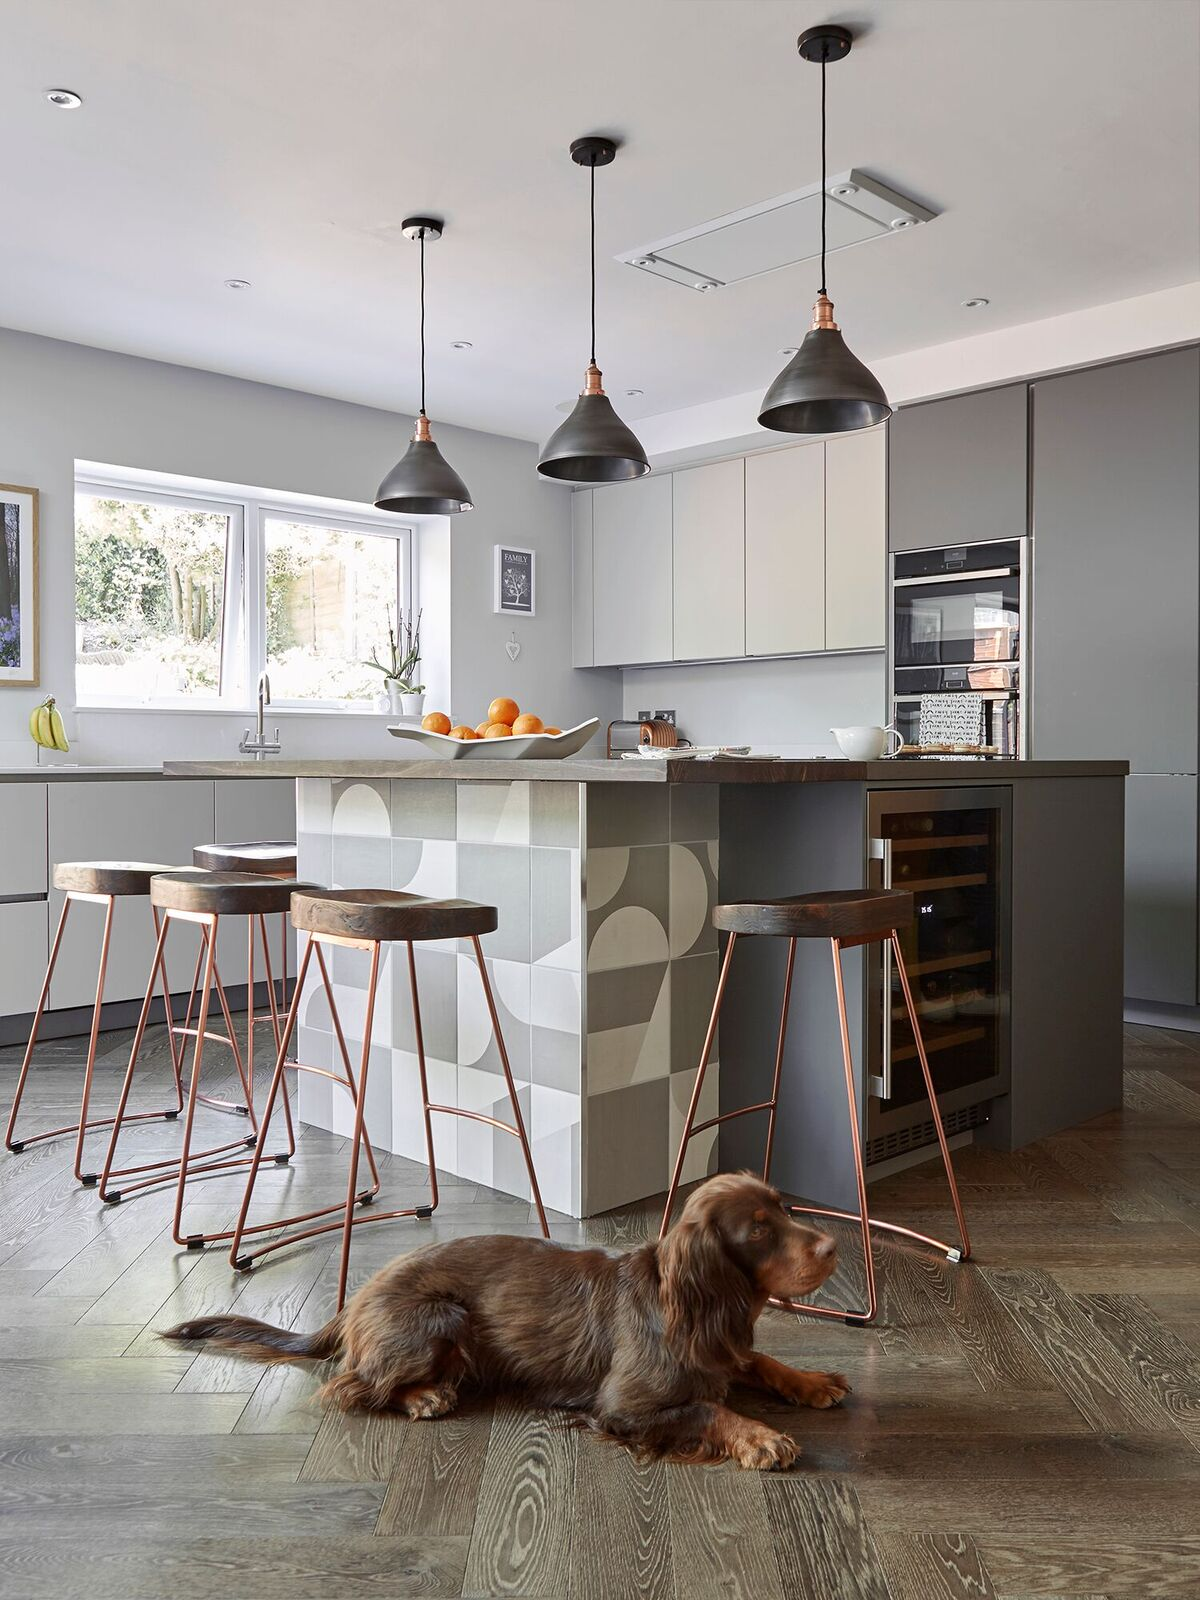 Beautiful industrial style kitchen using vintage lights